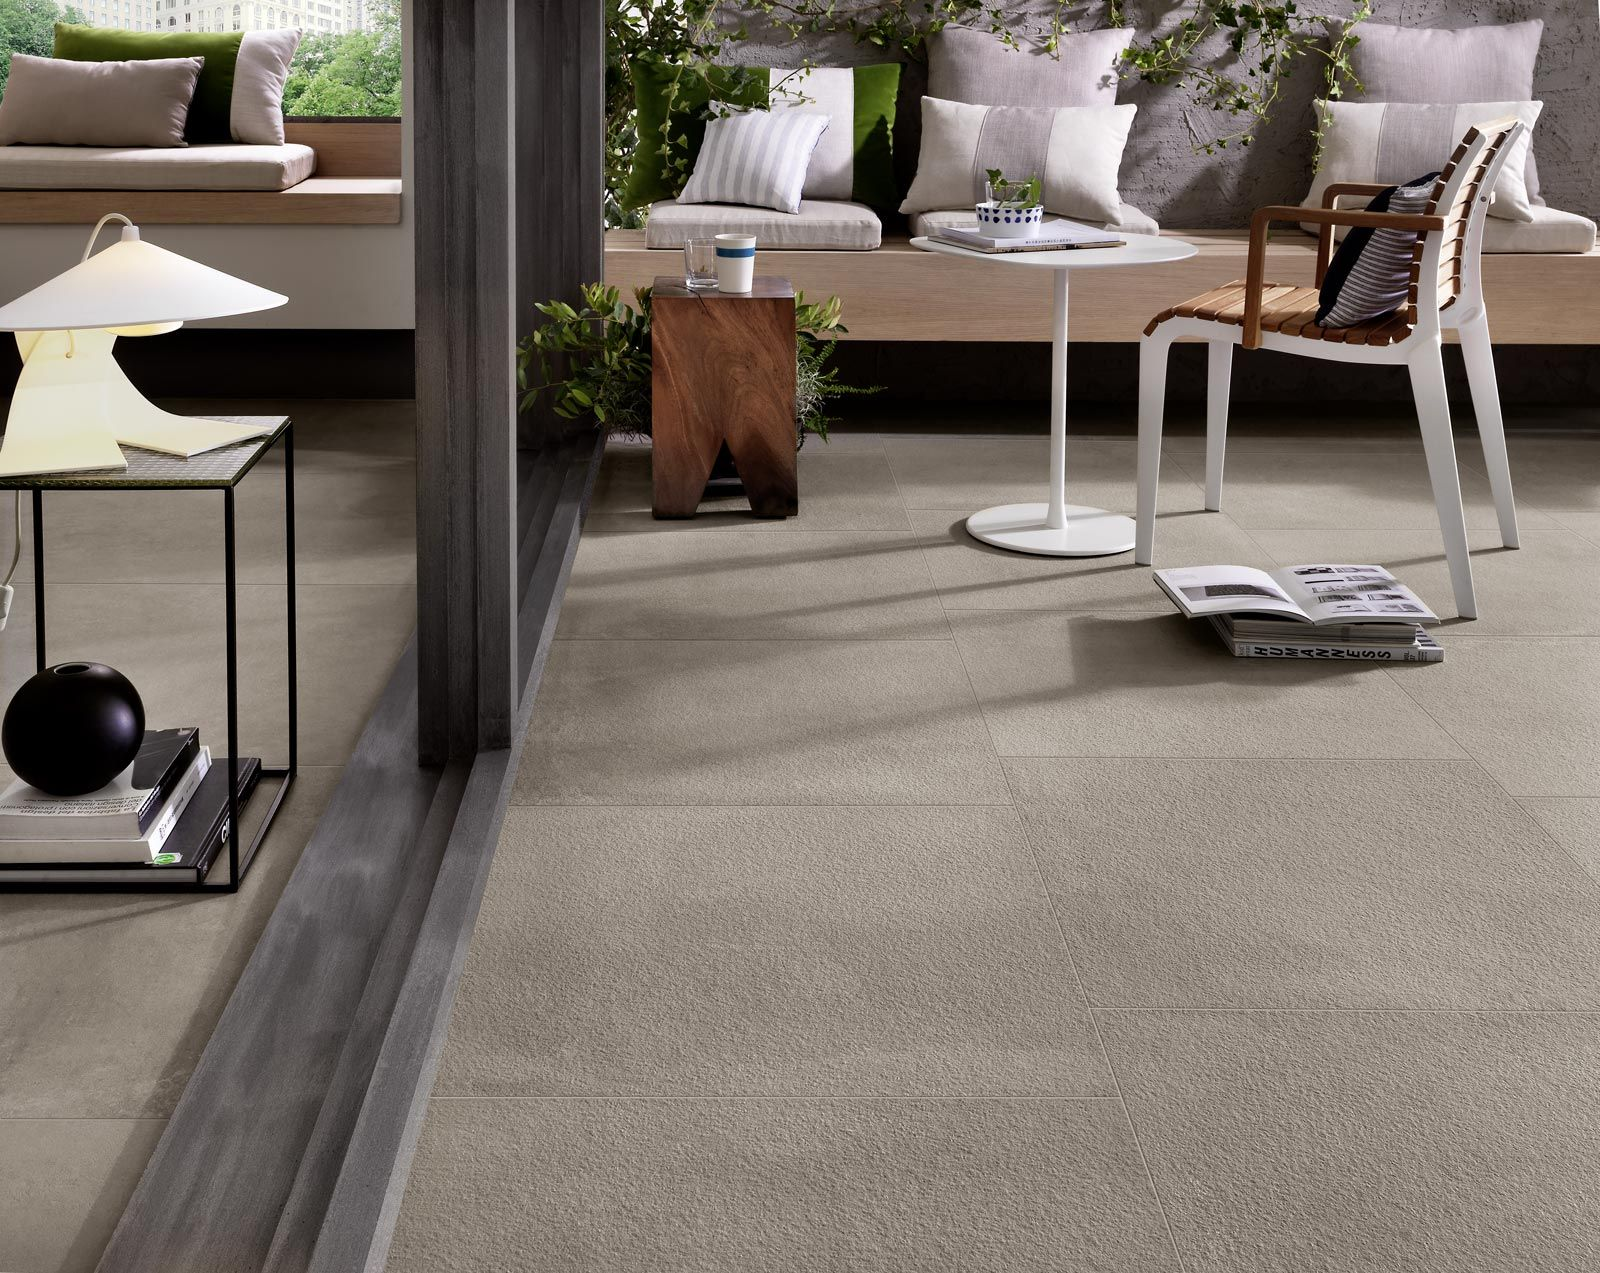 Boom Ceramic Tiles Ragno 7572 Indoor Outdoor Carpet Outdoor